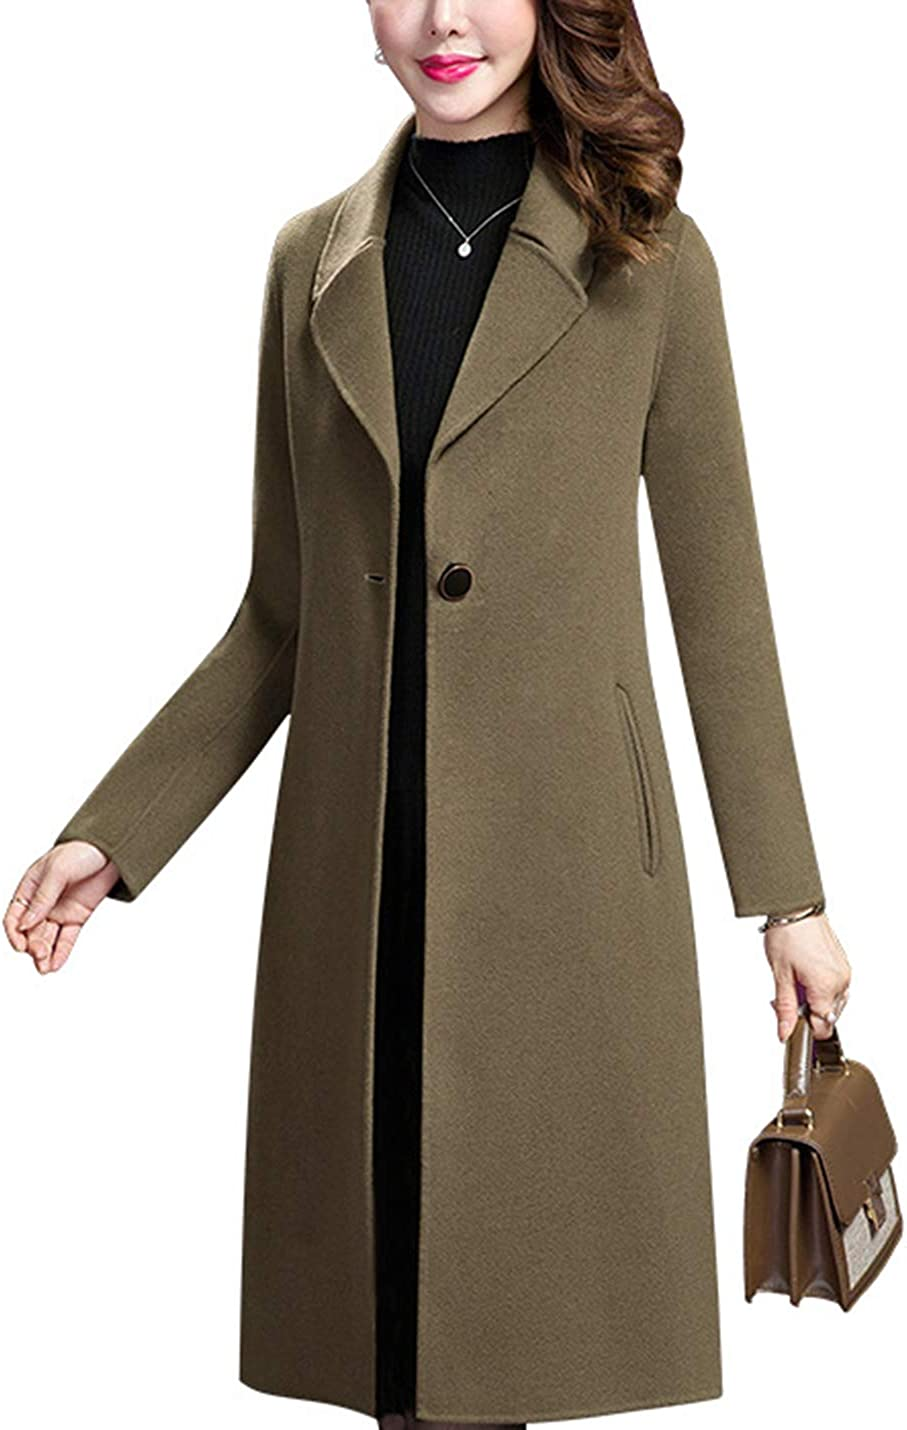 Uaneo Women's Mid Long Casual Slim Lapel Collar Single Breasted Woolen Pea Coats(Green-S)